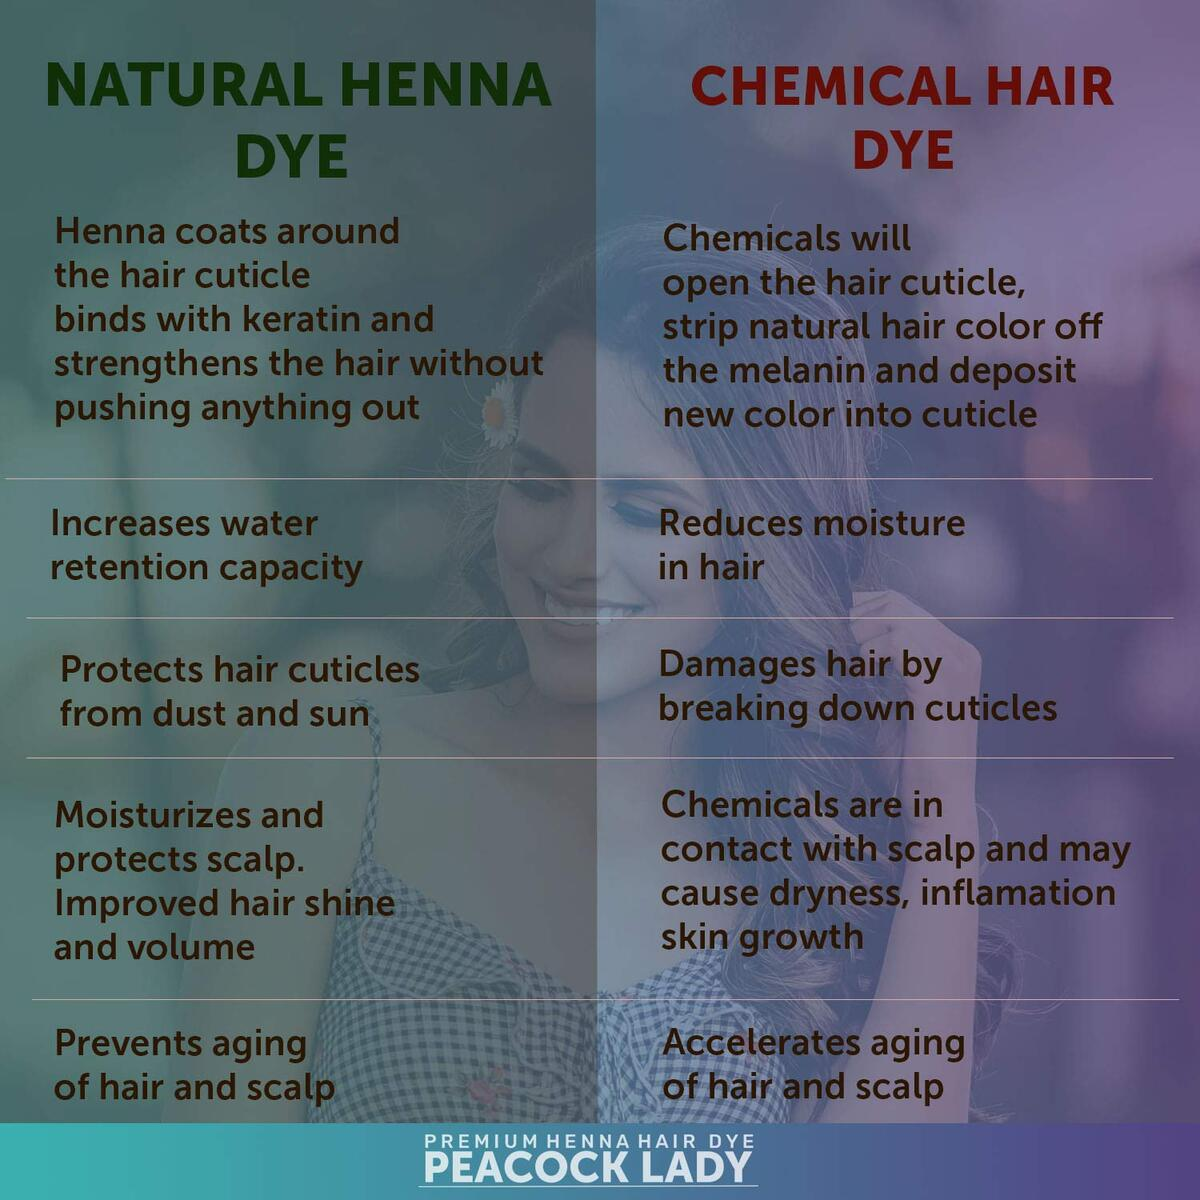 Peacock Lady Dark Brown Henna Hair Color - Ammonia Free Natural Hair Dye - Cruelty Free Vegan Henna Powder - Henna Eyebrow Tint & Beard Dye 135g